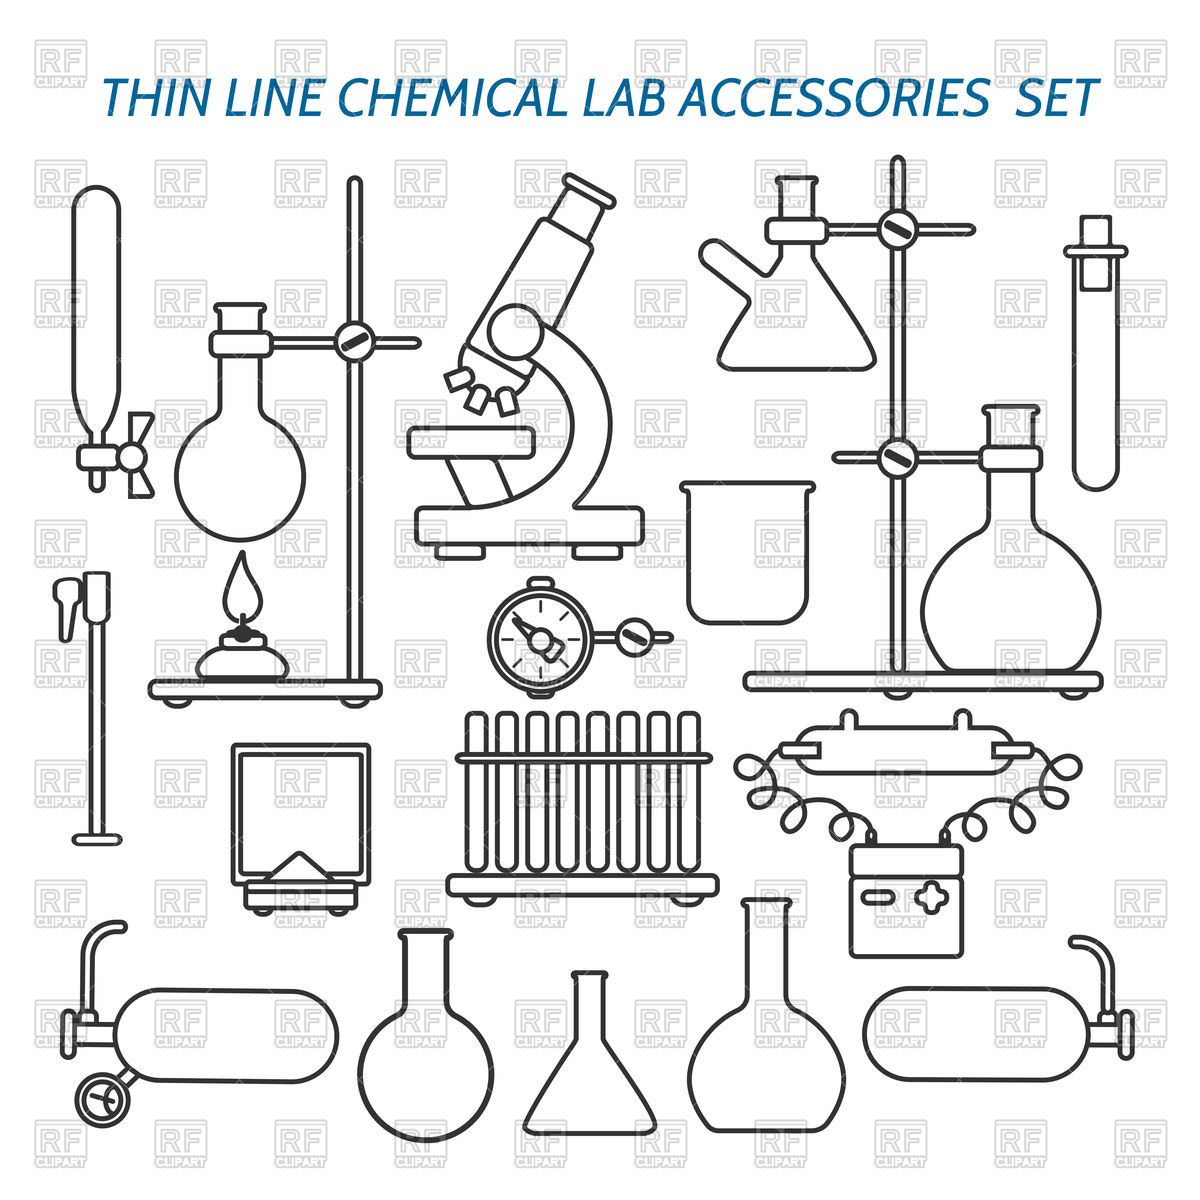 Thin line chemical lab equipment and accessories icon set Stock Vector Image.